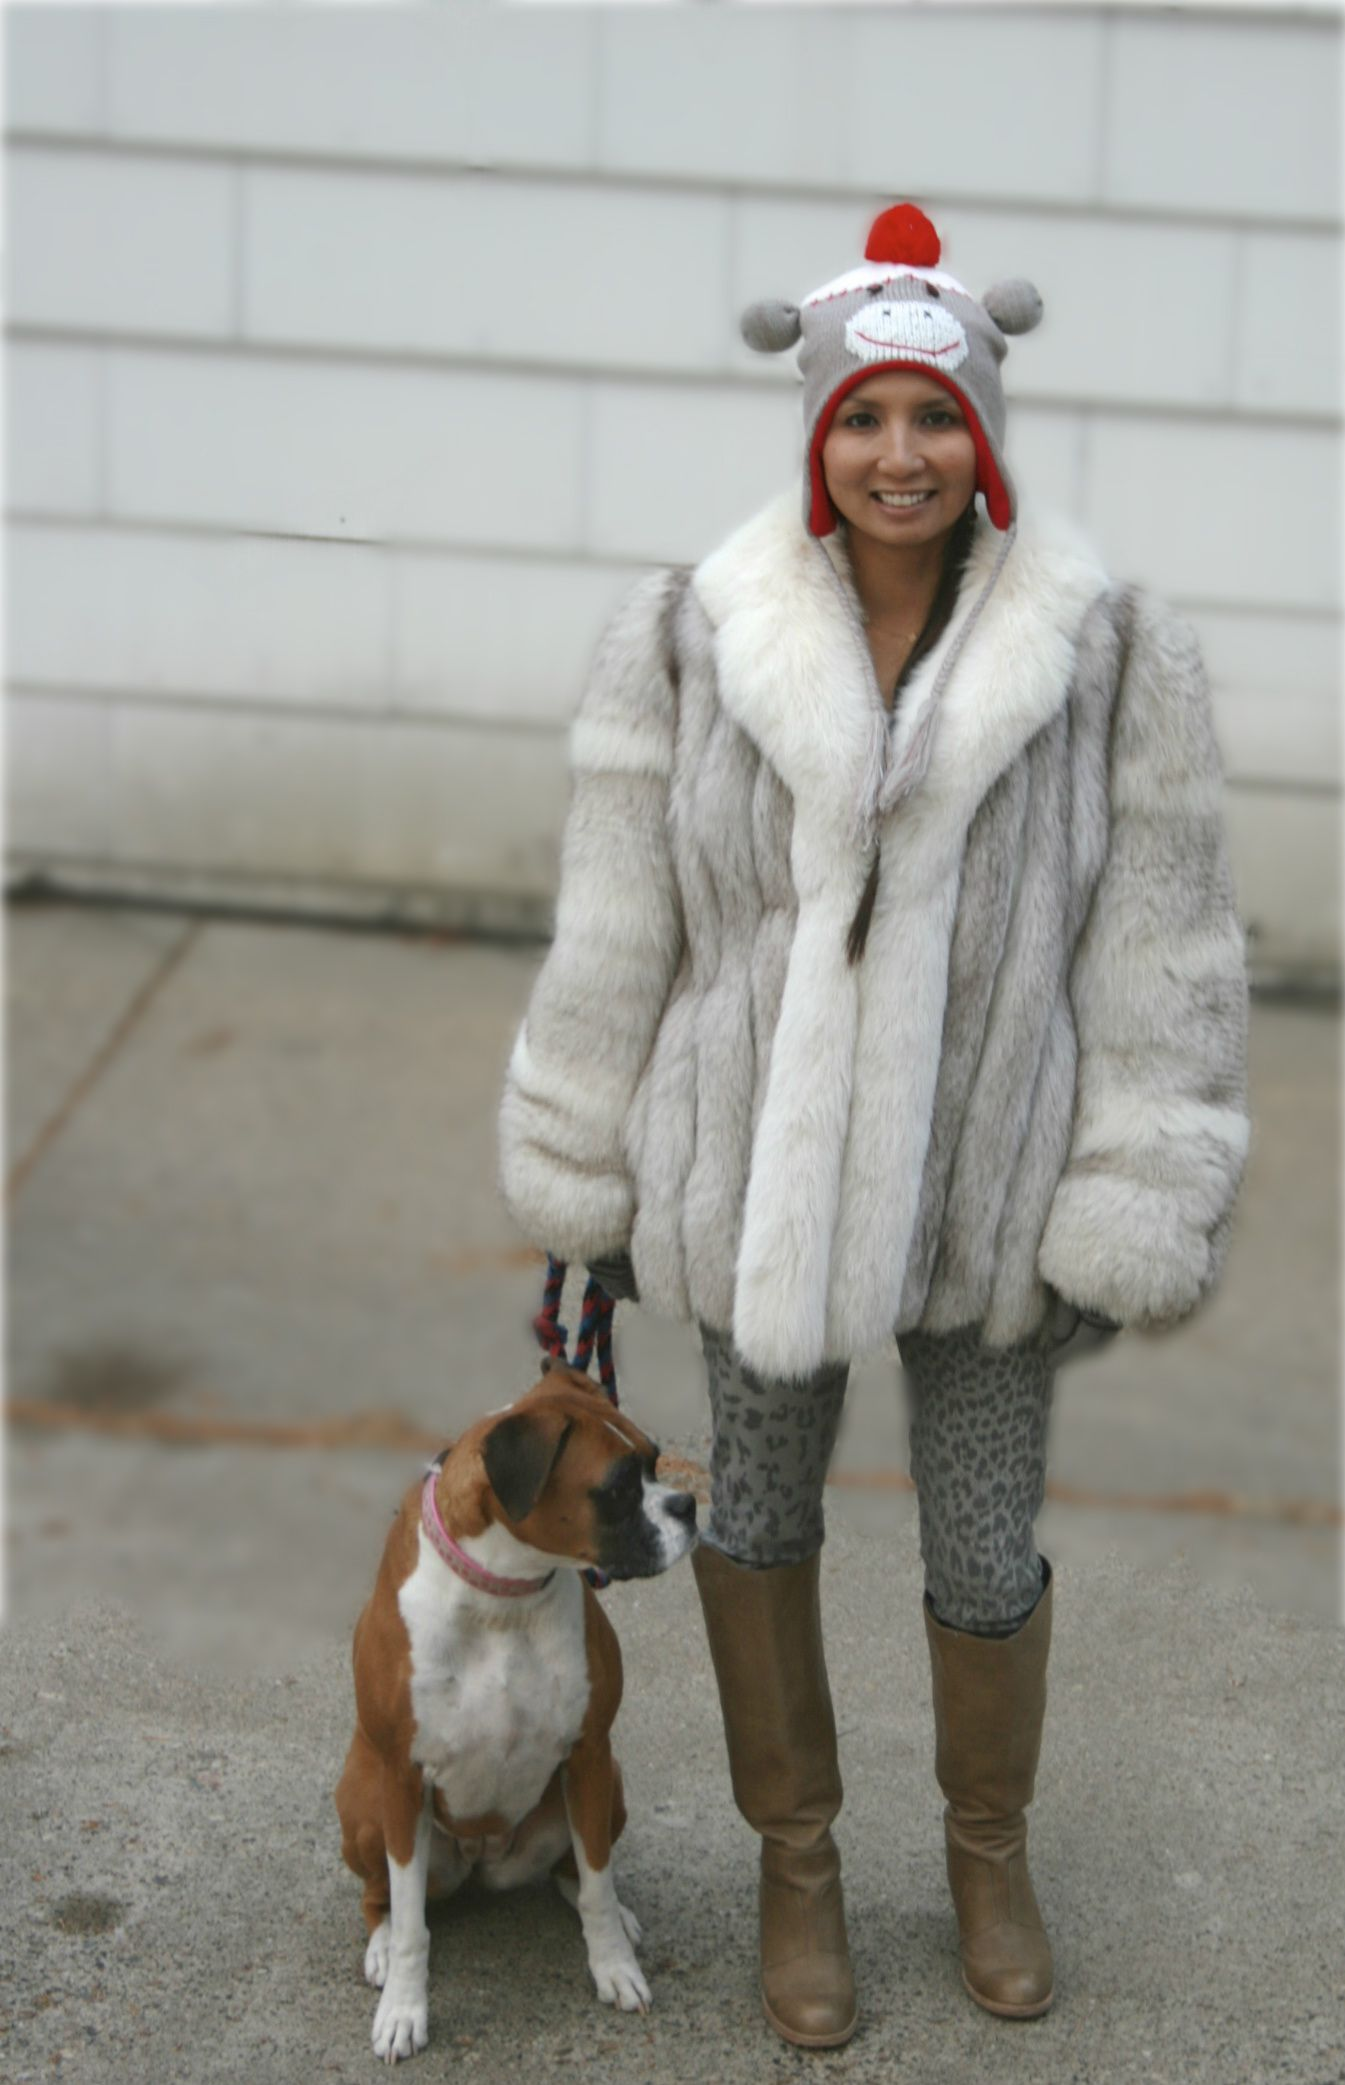 From the PS BANANAS #fashionblog: SWOON! #Fox #Fur coat, #CurrentElliott #skinnyjeans, #DolceVita Quince #boots